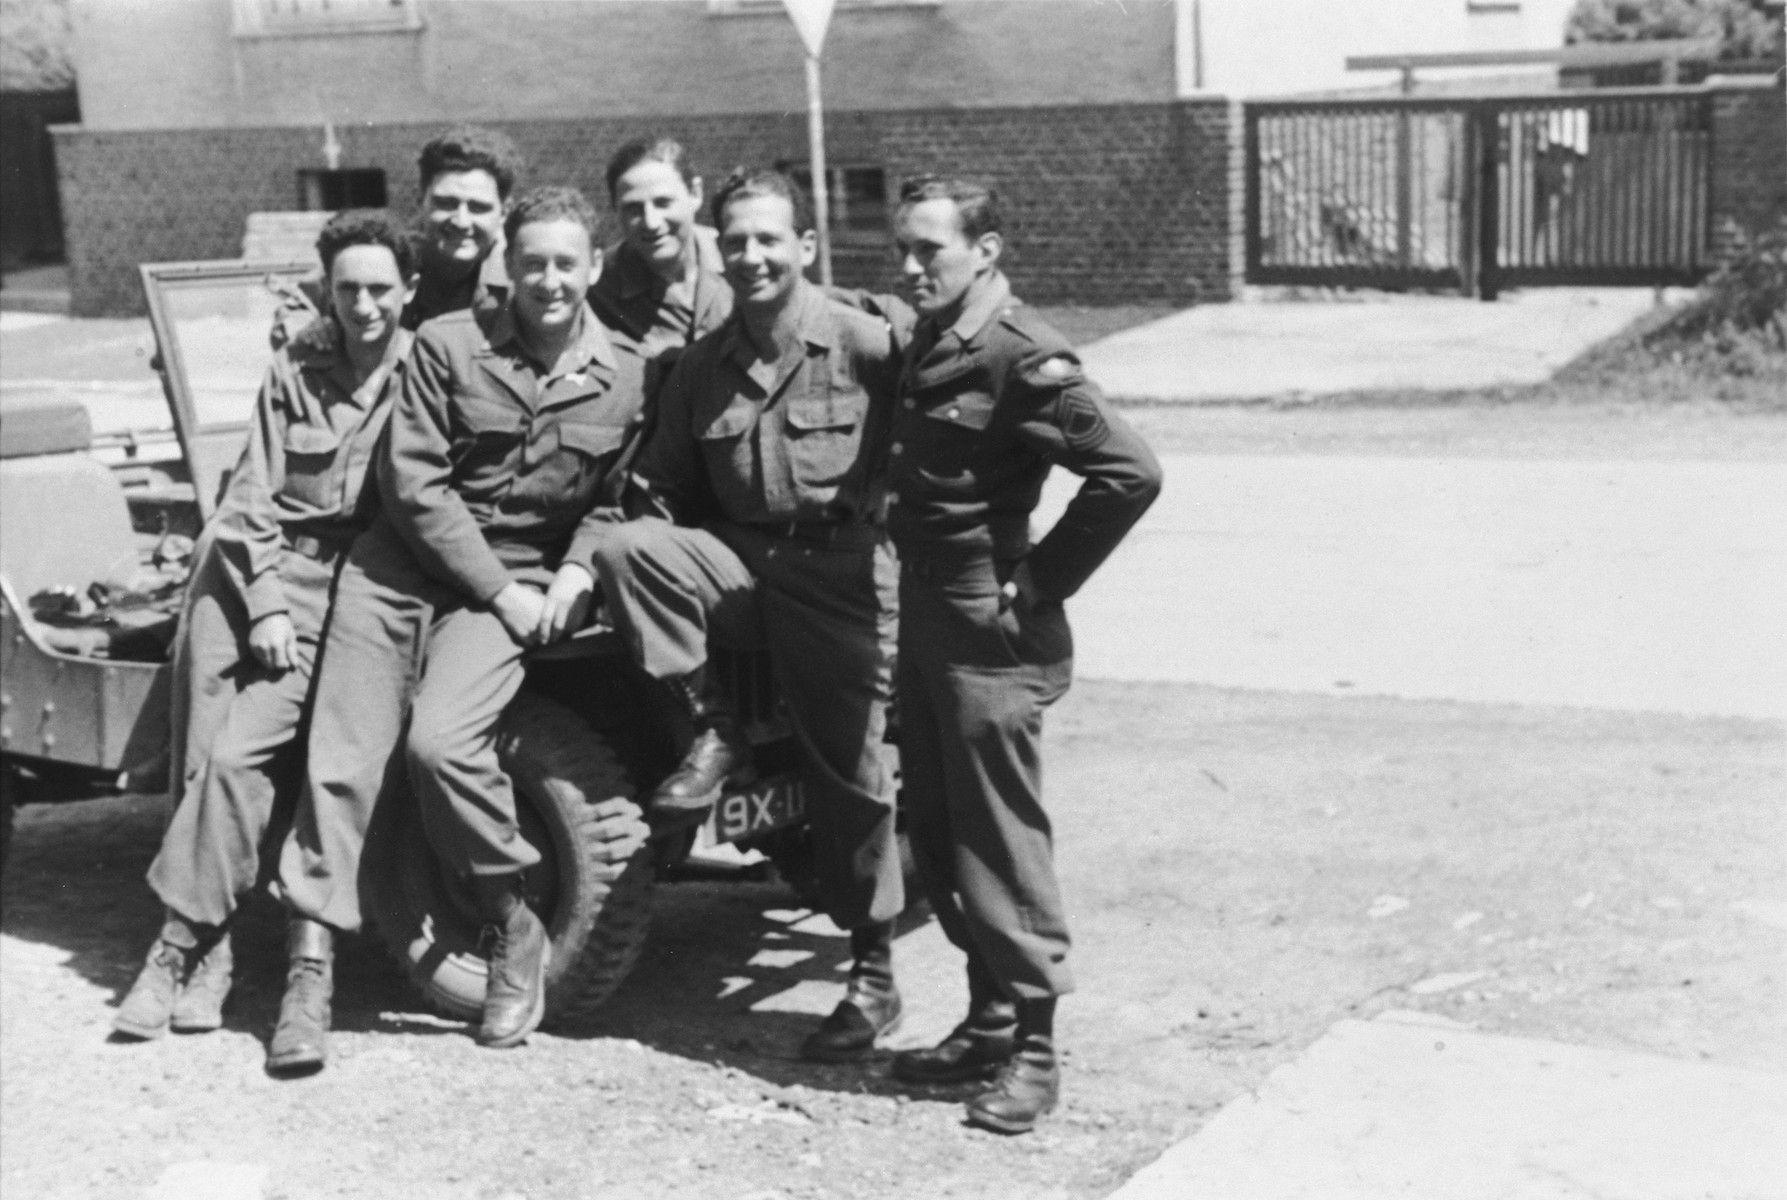 Group portrait of American soldiers, all of whom were Jewish emigres from Nazi Germany and Austria.  Among those pictured are Charles Stein (third from the left).